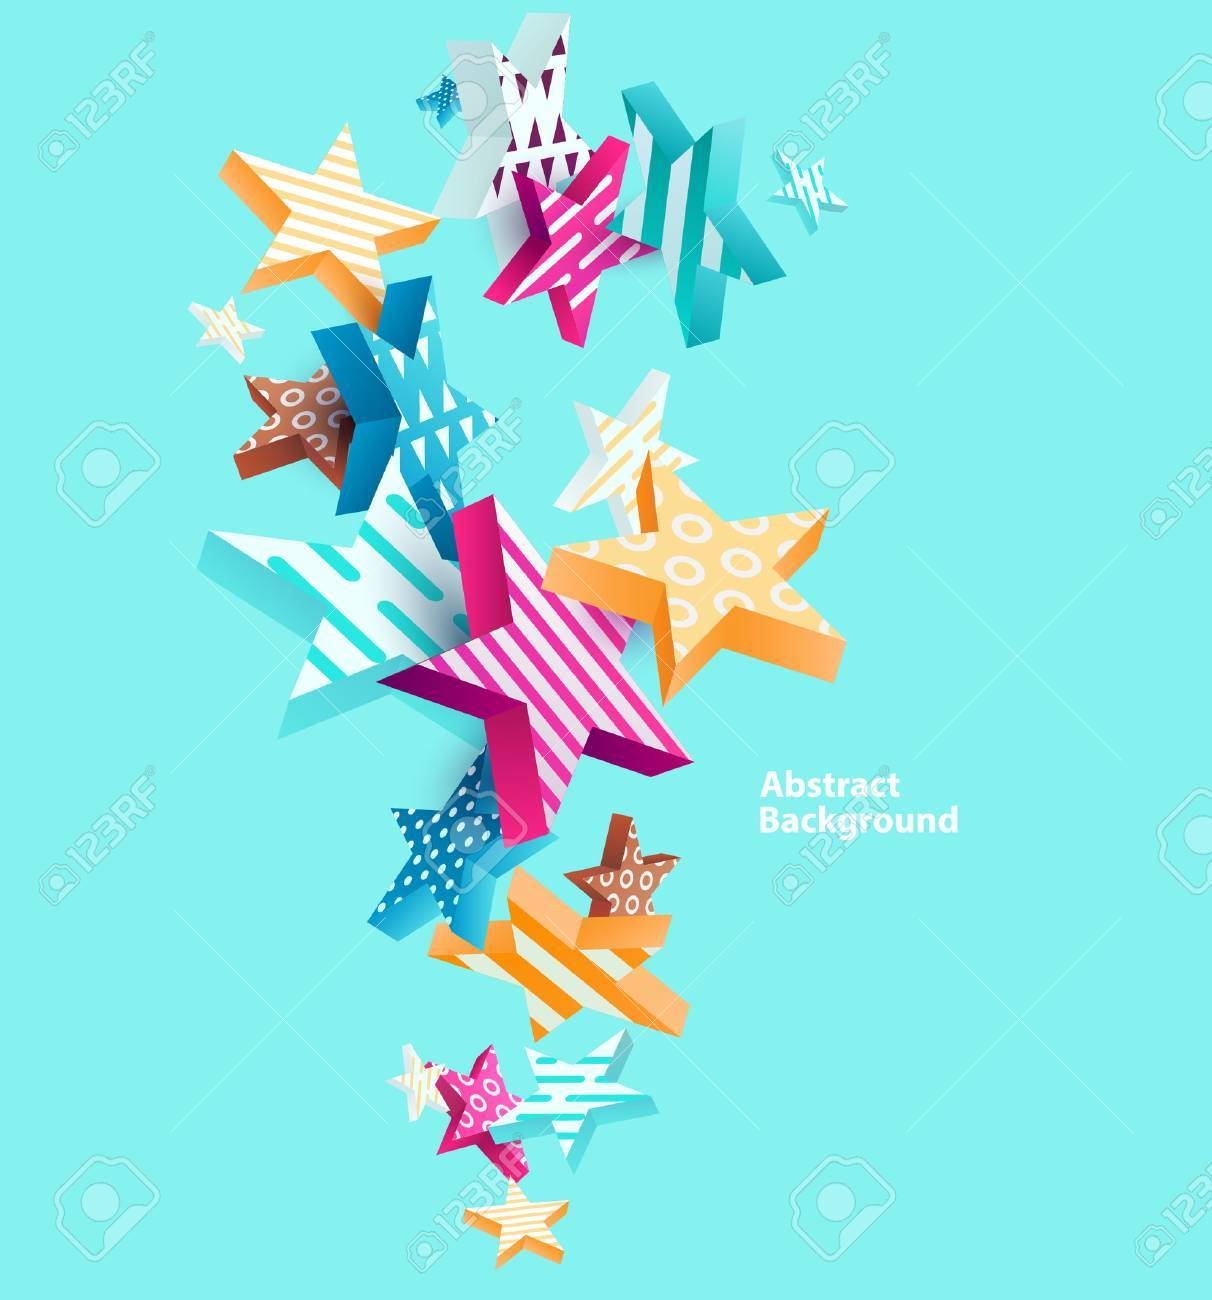 Abstract colorful background with stars - 57569722